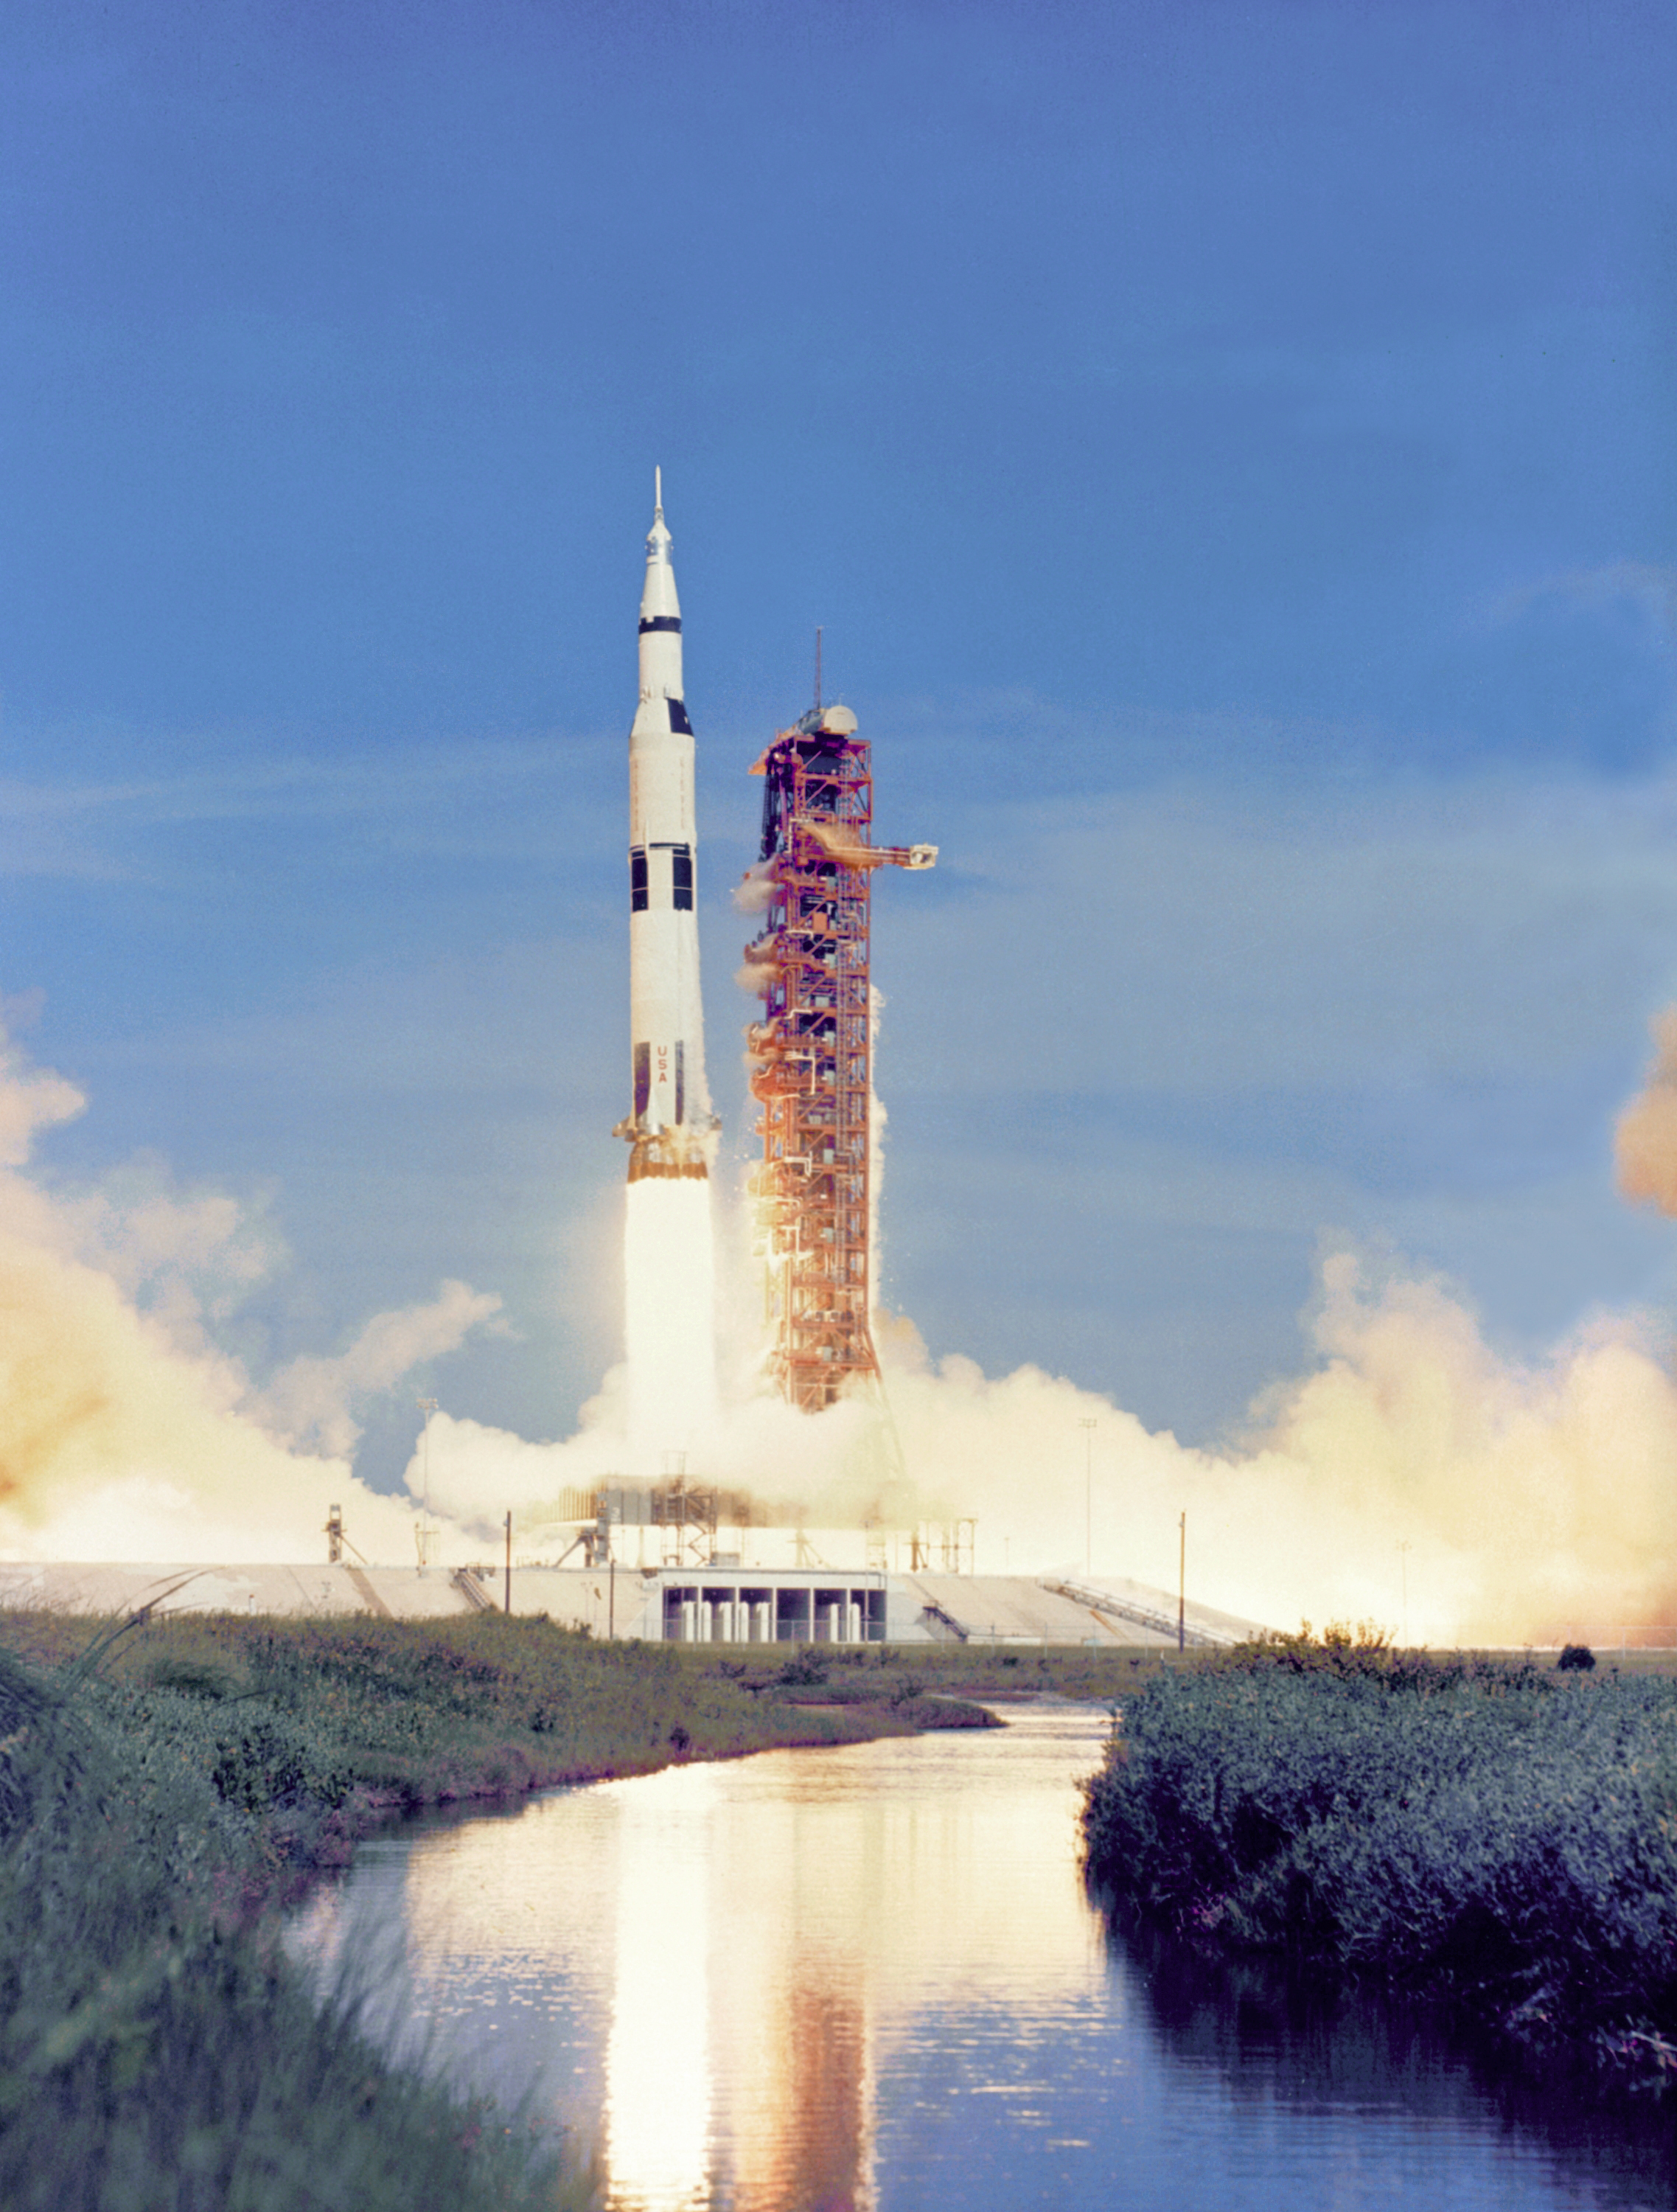 Apollo 15 Liftoff from Kennedy Space Center